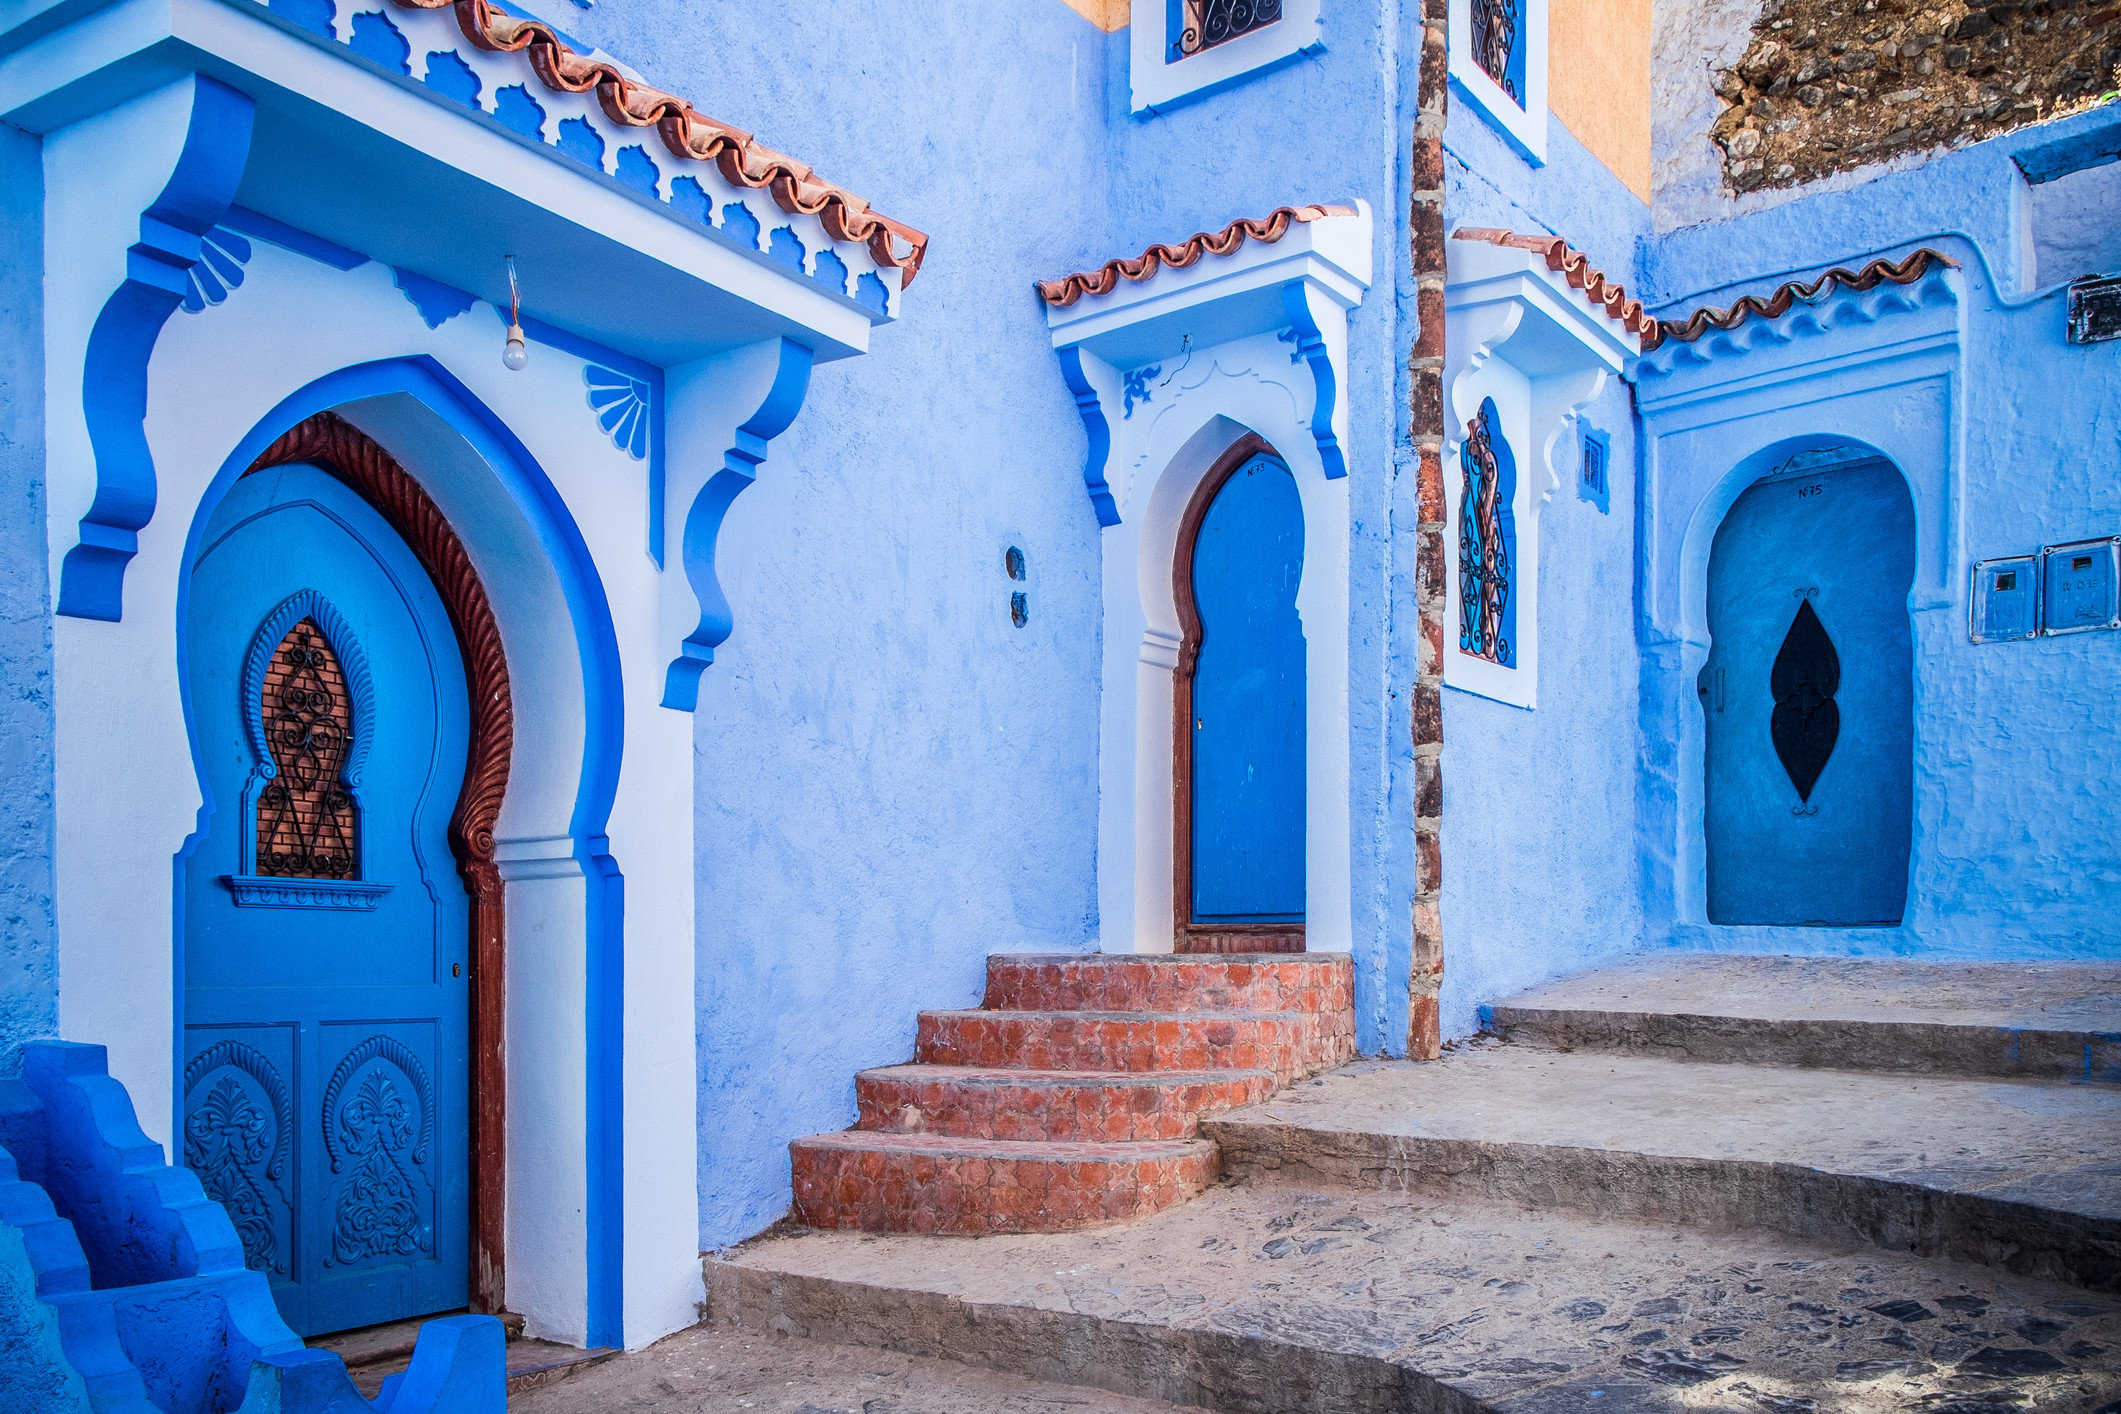 Arts + Culture Marrakech Morocco Offbeat Style + Design Trip Ideas building color blue Architecture house arch place of worship facade temple monastery stone